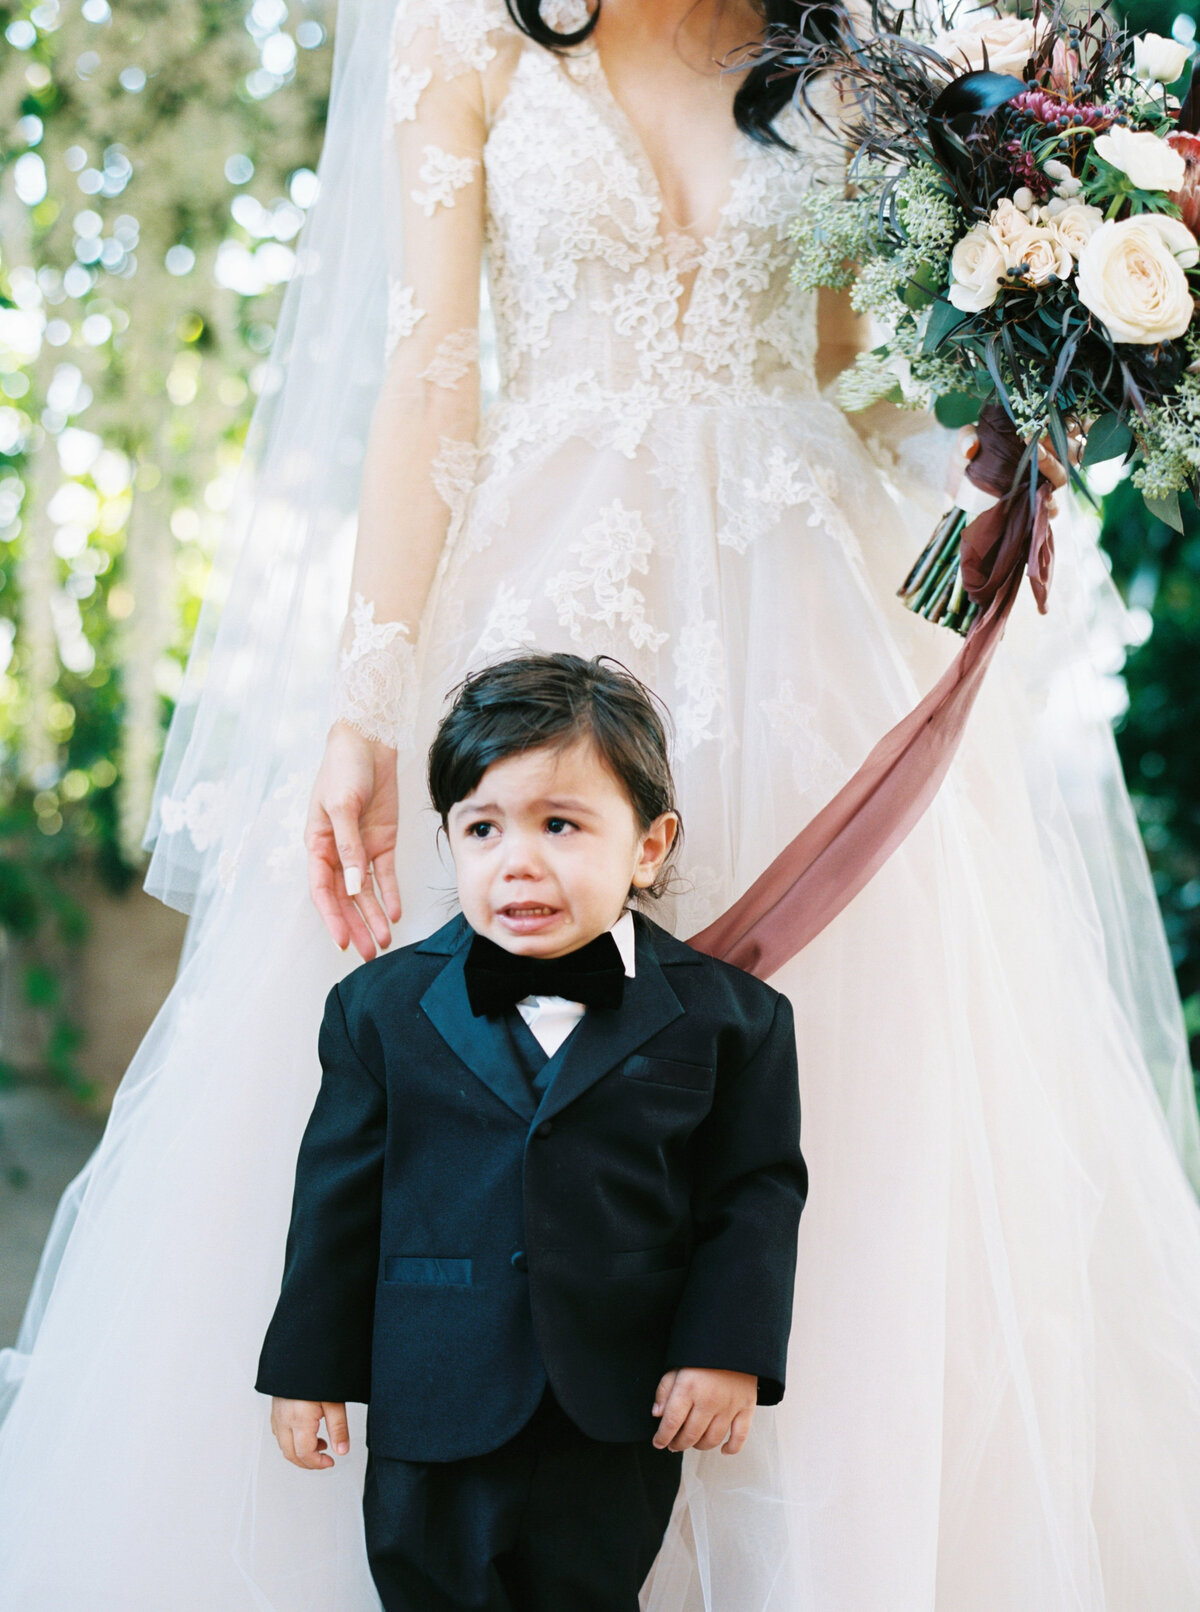 Kaylea Moreno_wedding gallery - Rami-Cassandra-Wedding-krmorenophoto-299